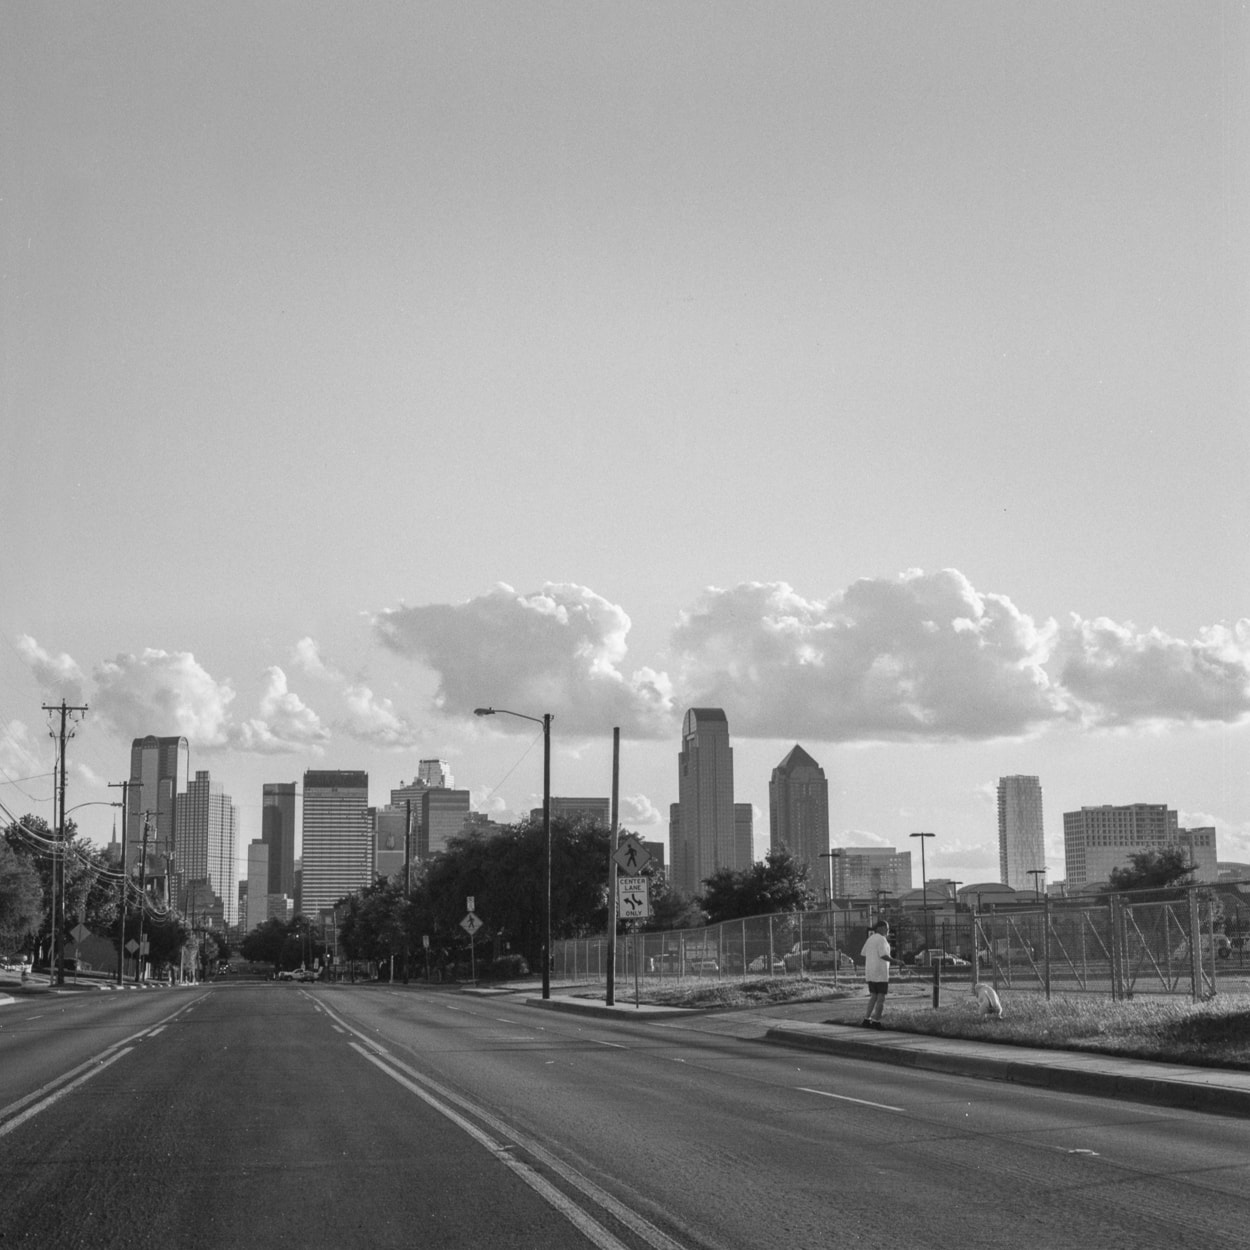 The Dallas skyline seen from Old East Dallas